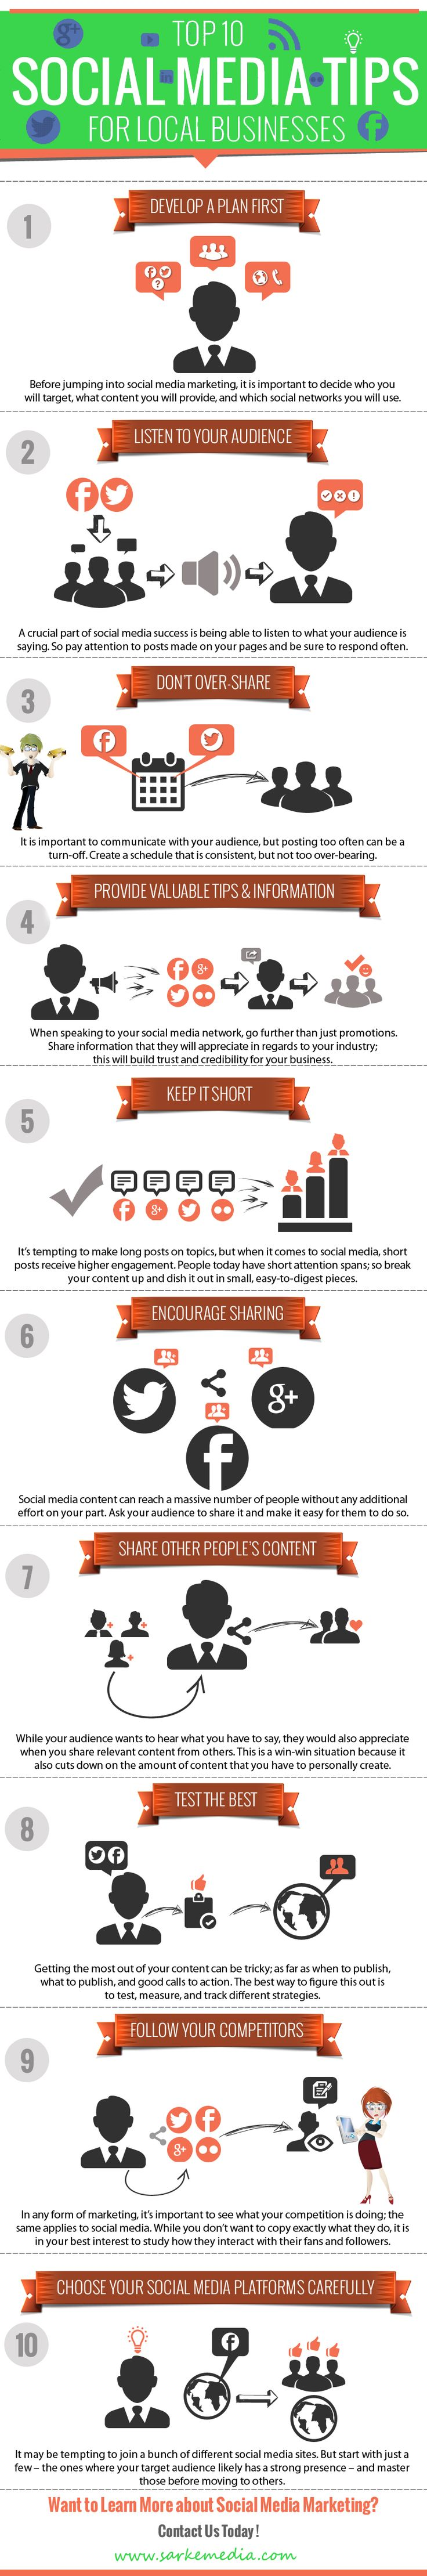 Top 10 social media tips for local business (or any business).